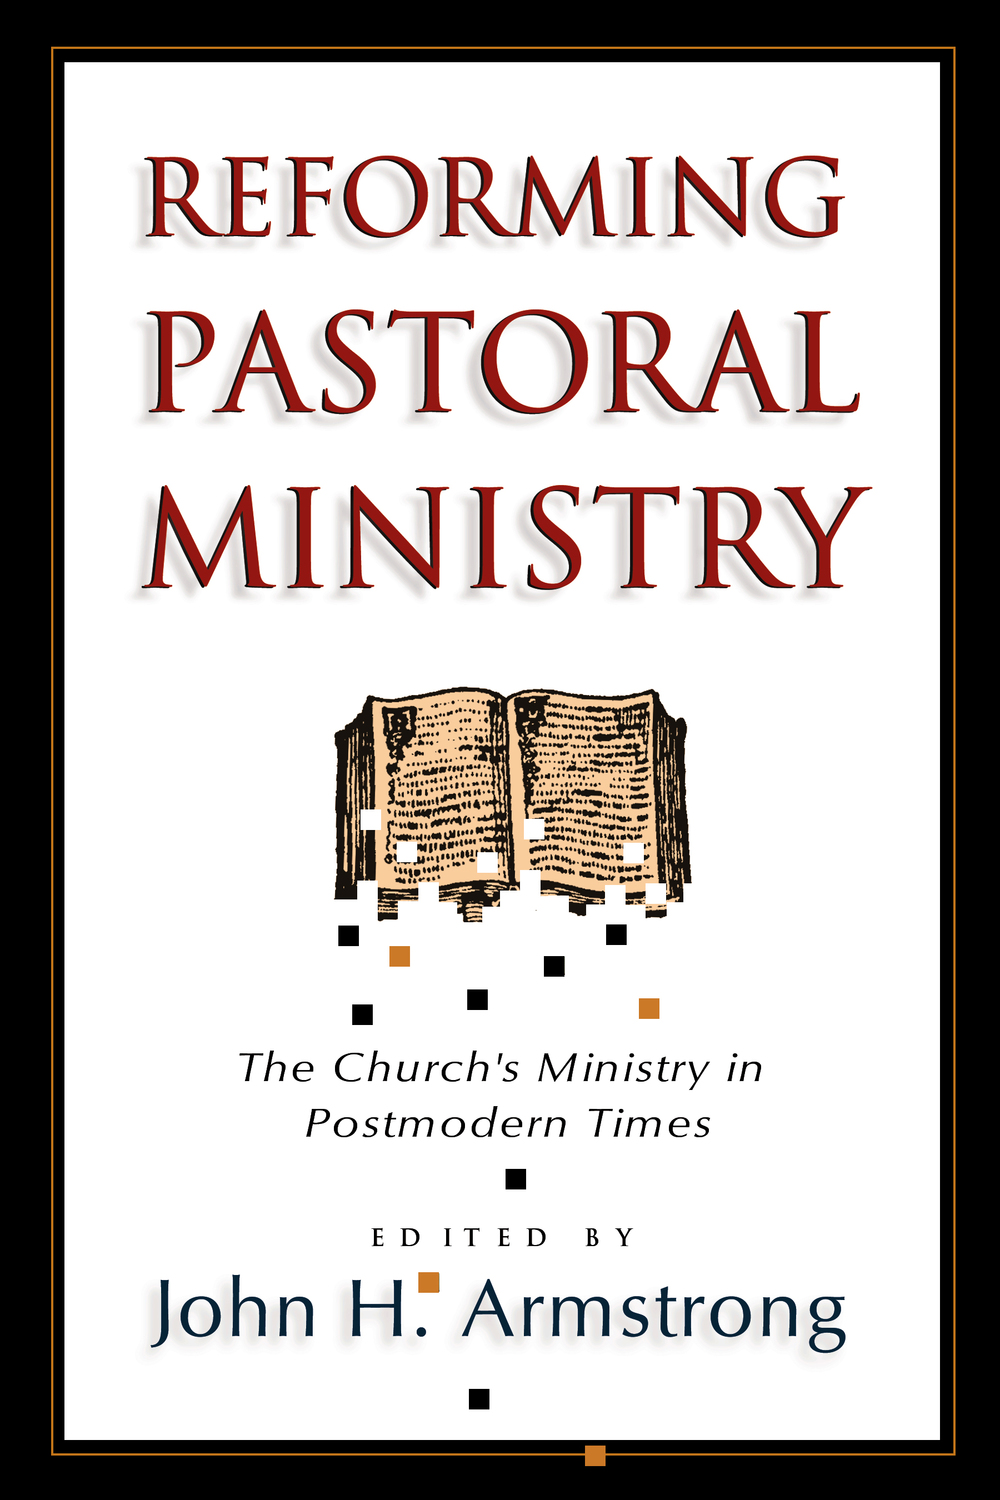 Reforming Pastoral Ministry